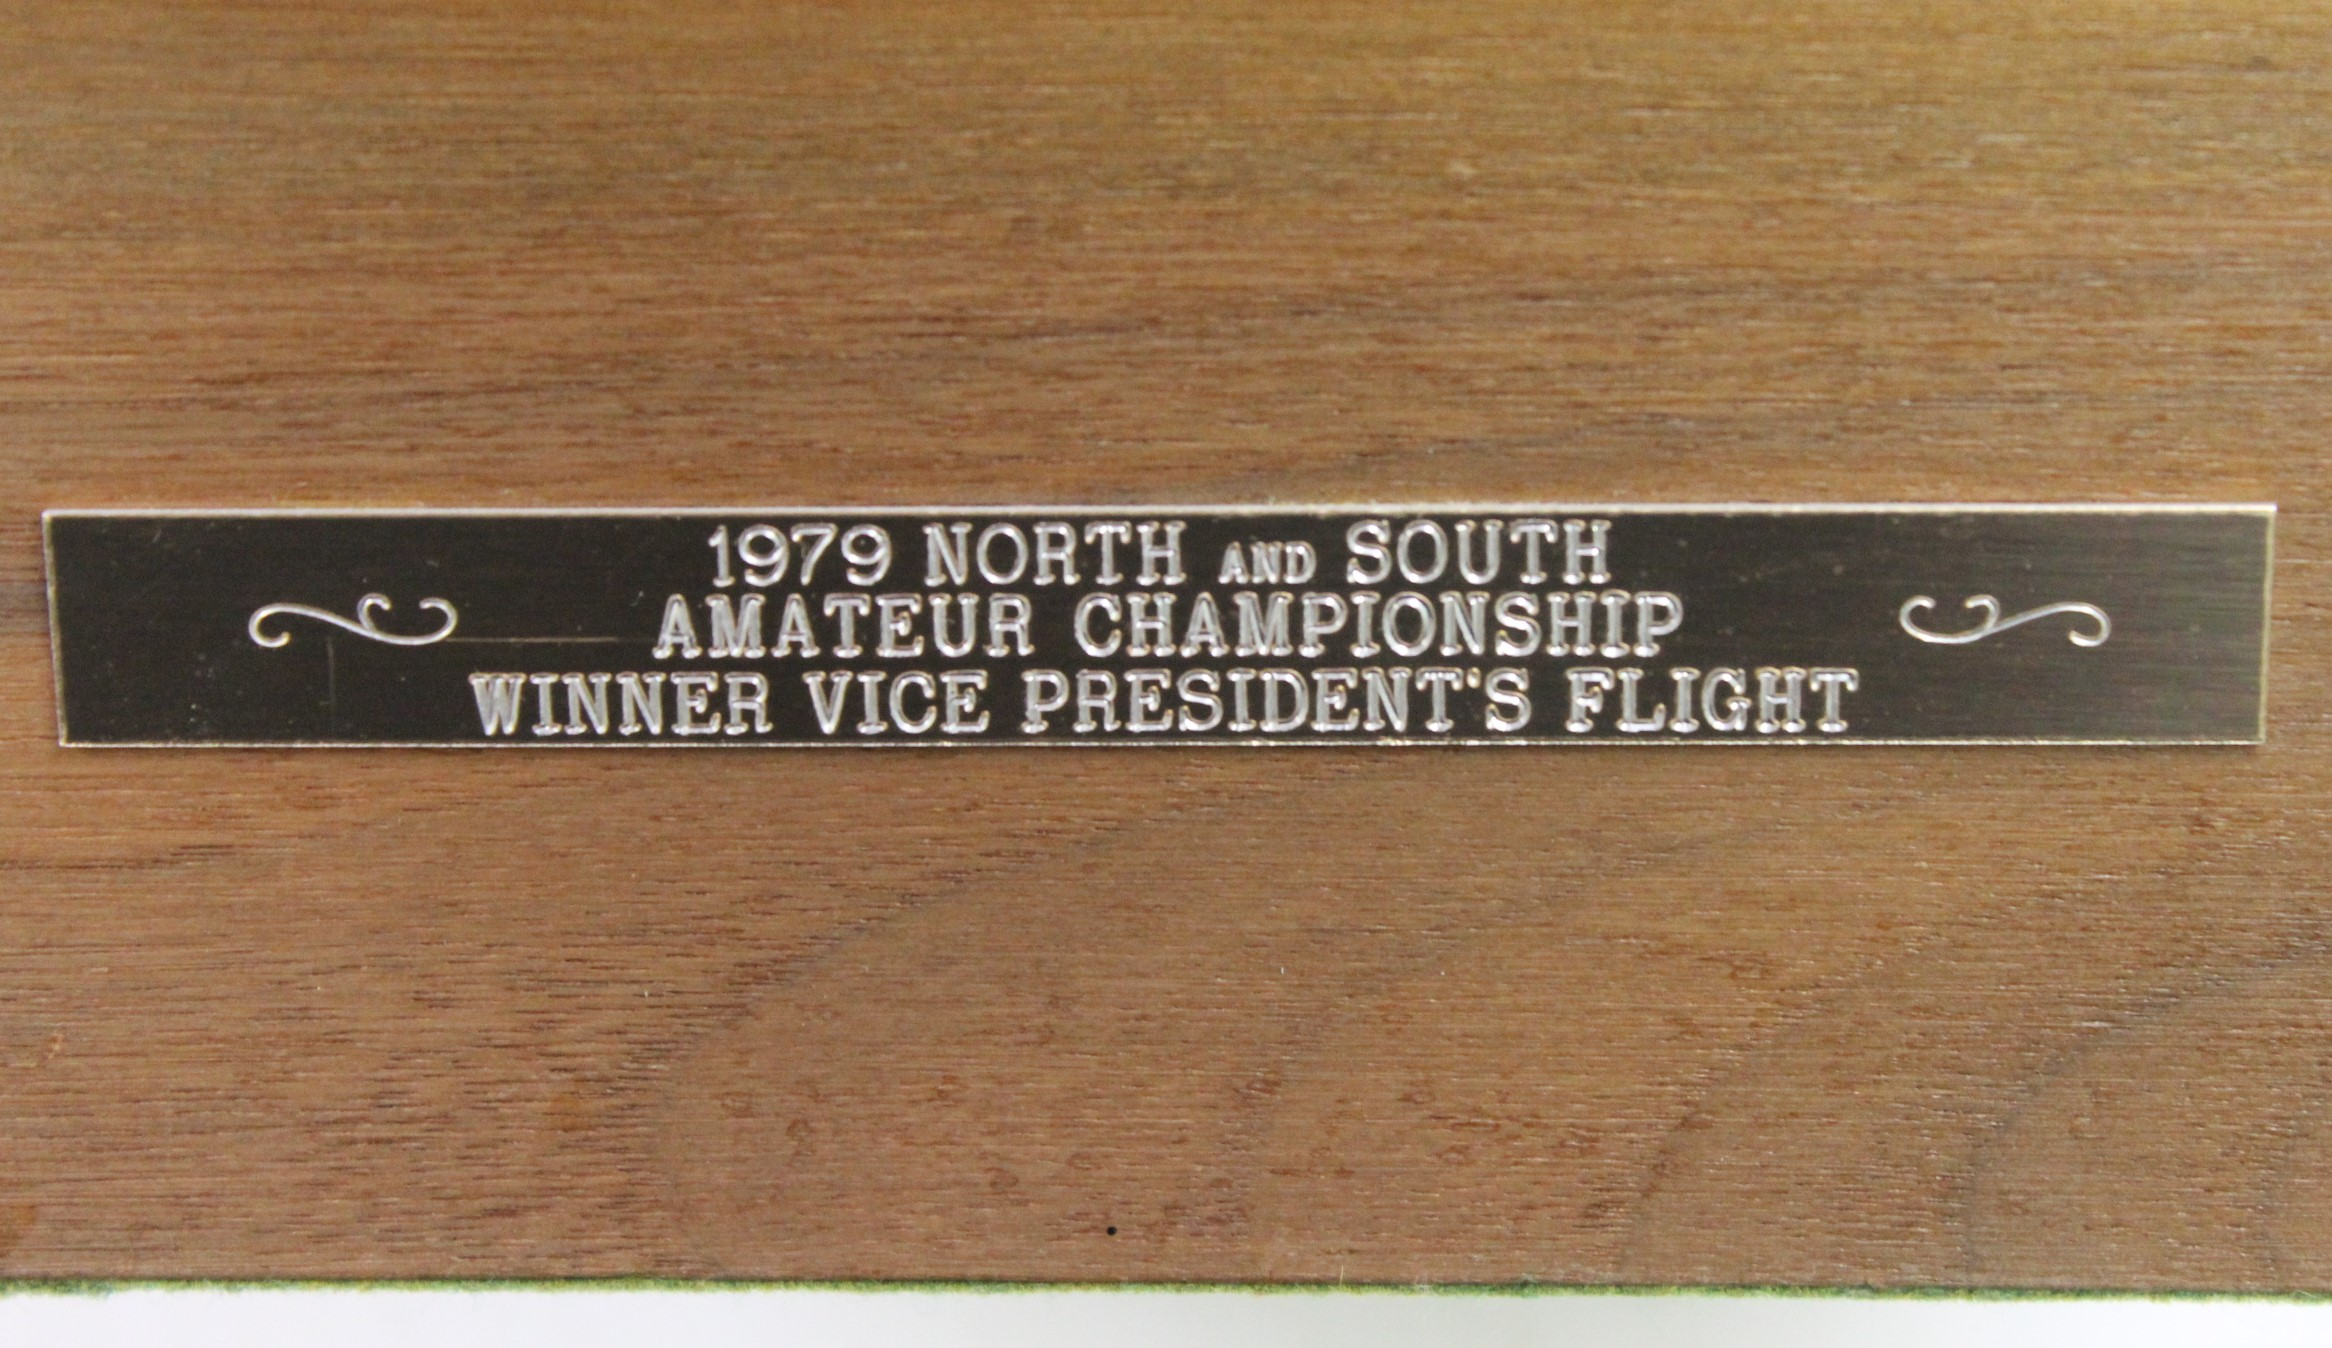 North and south amateur championship